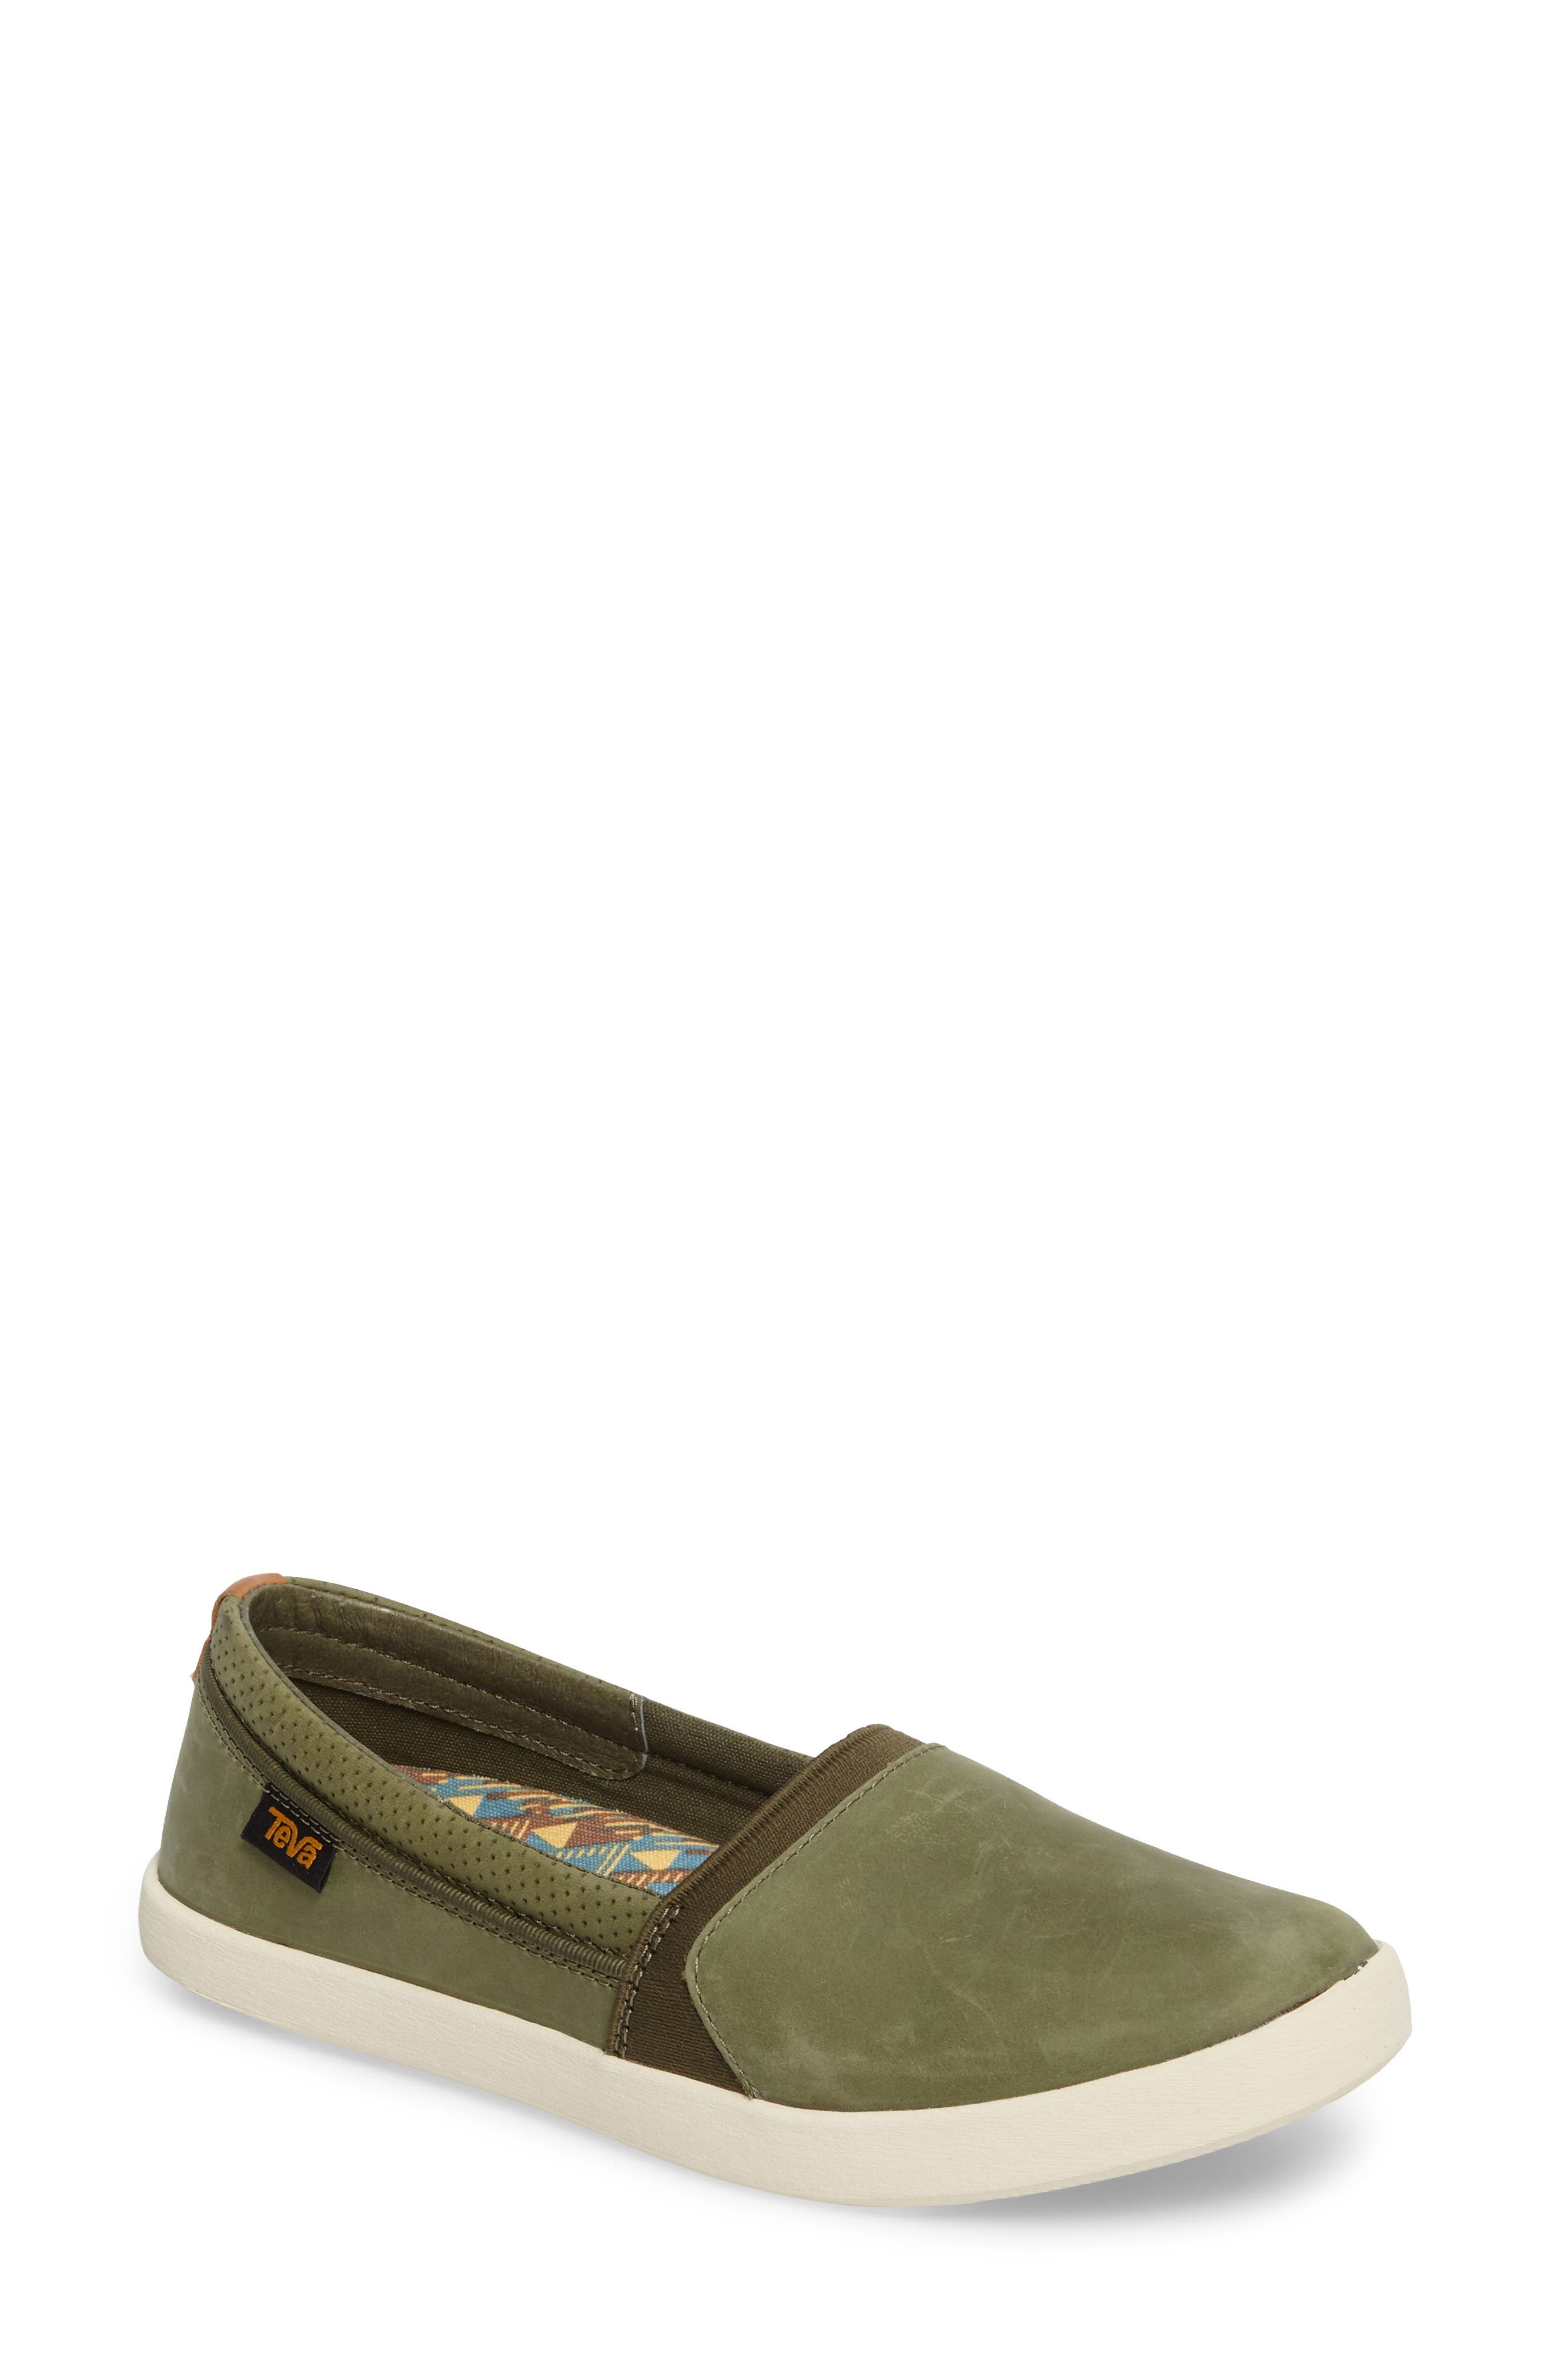 Willow Slip-On Sneaker,                         Main,                         color, Olive Leather